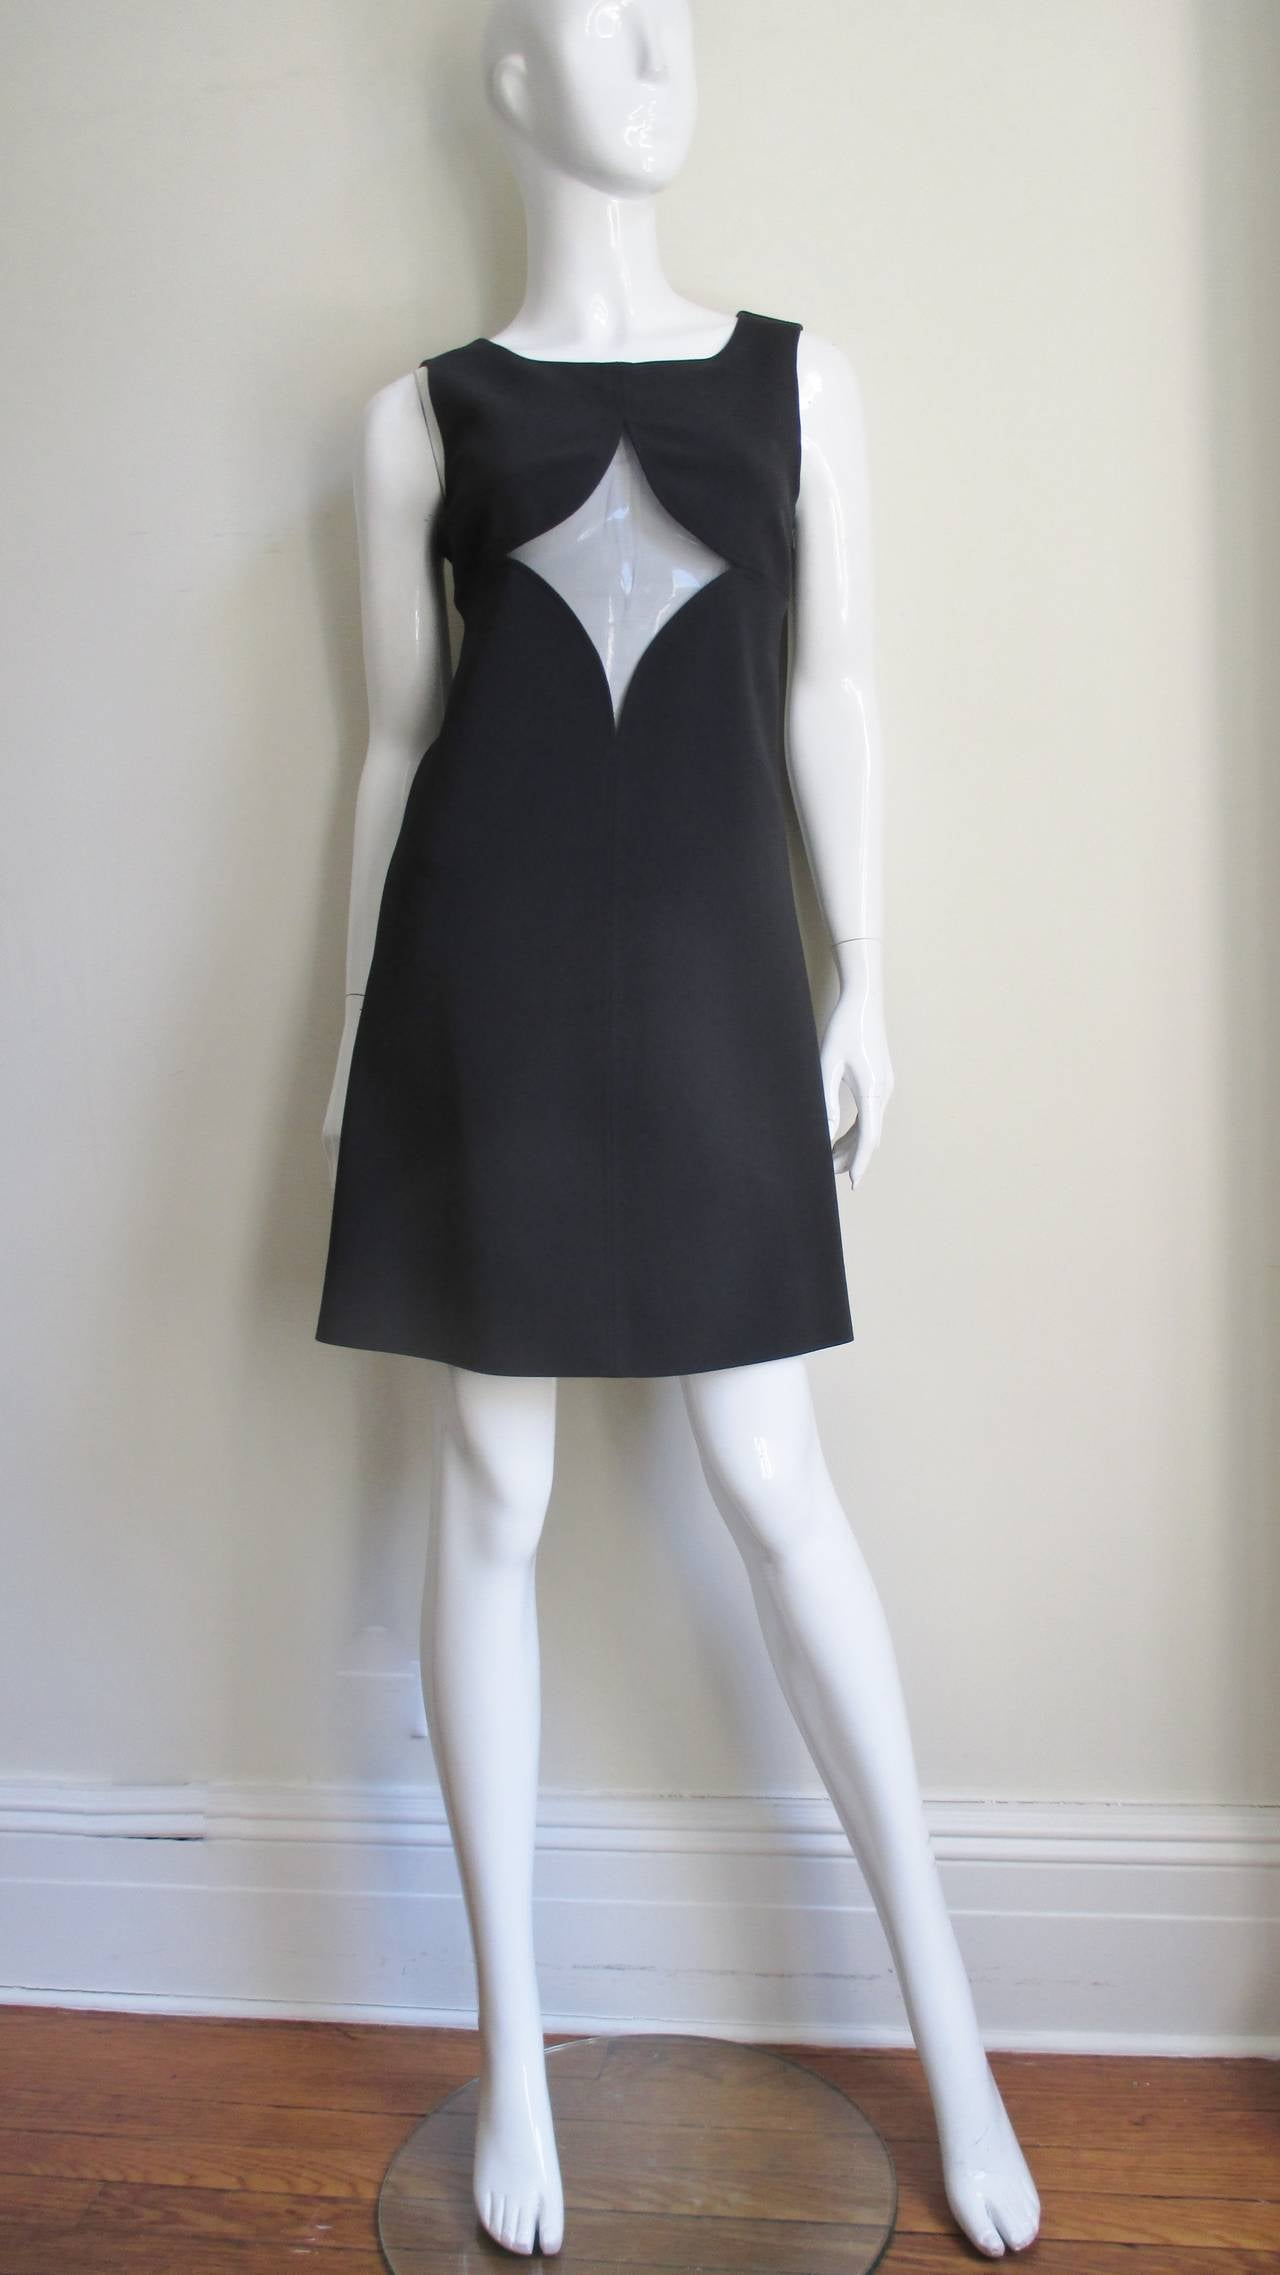 1960s Courreges Cutouts Dress In New never worn Condition For Sale In New York, NY